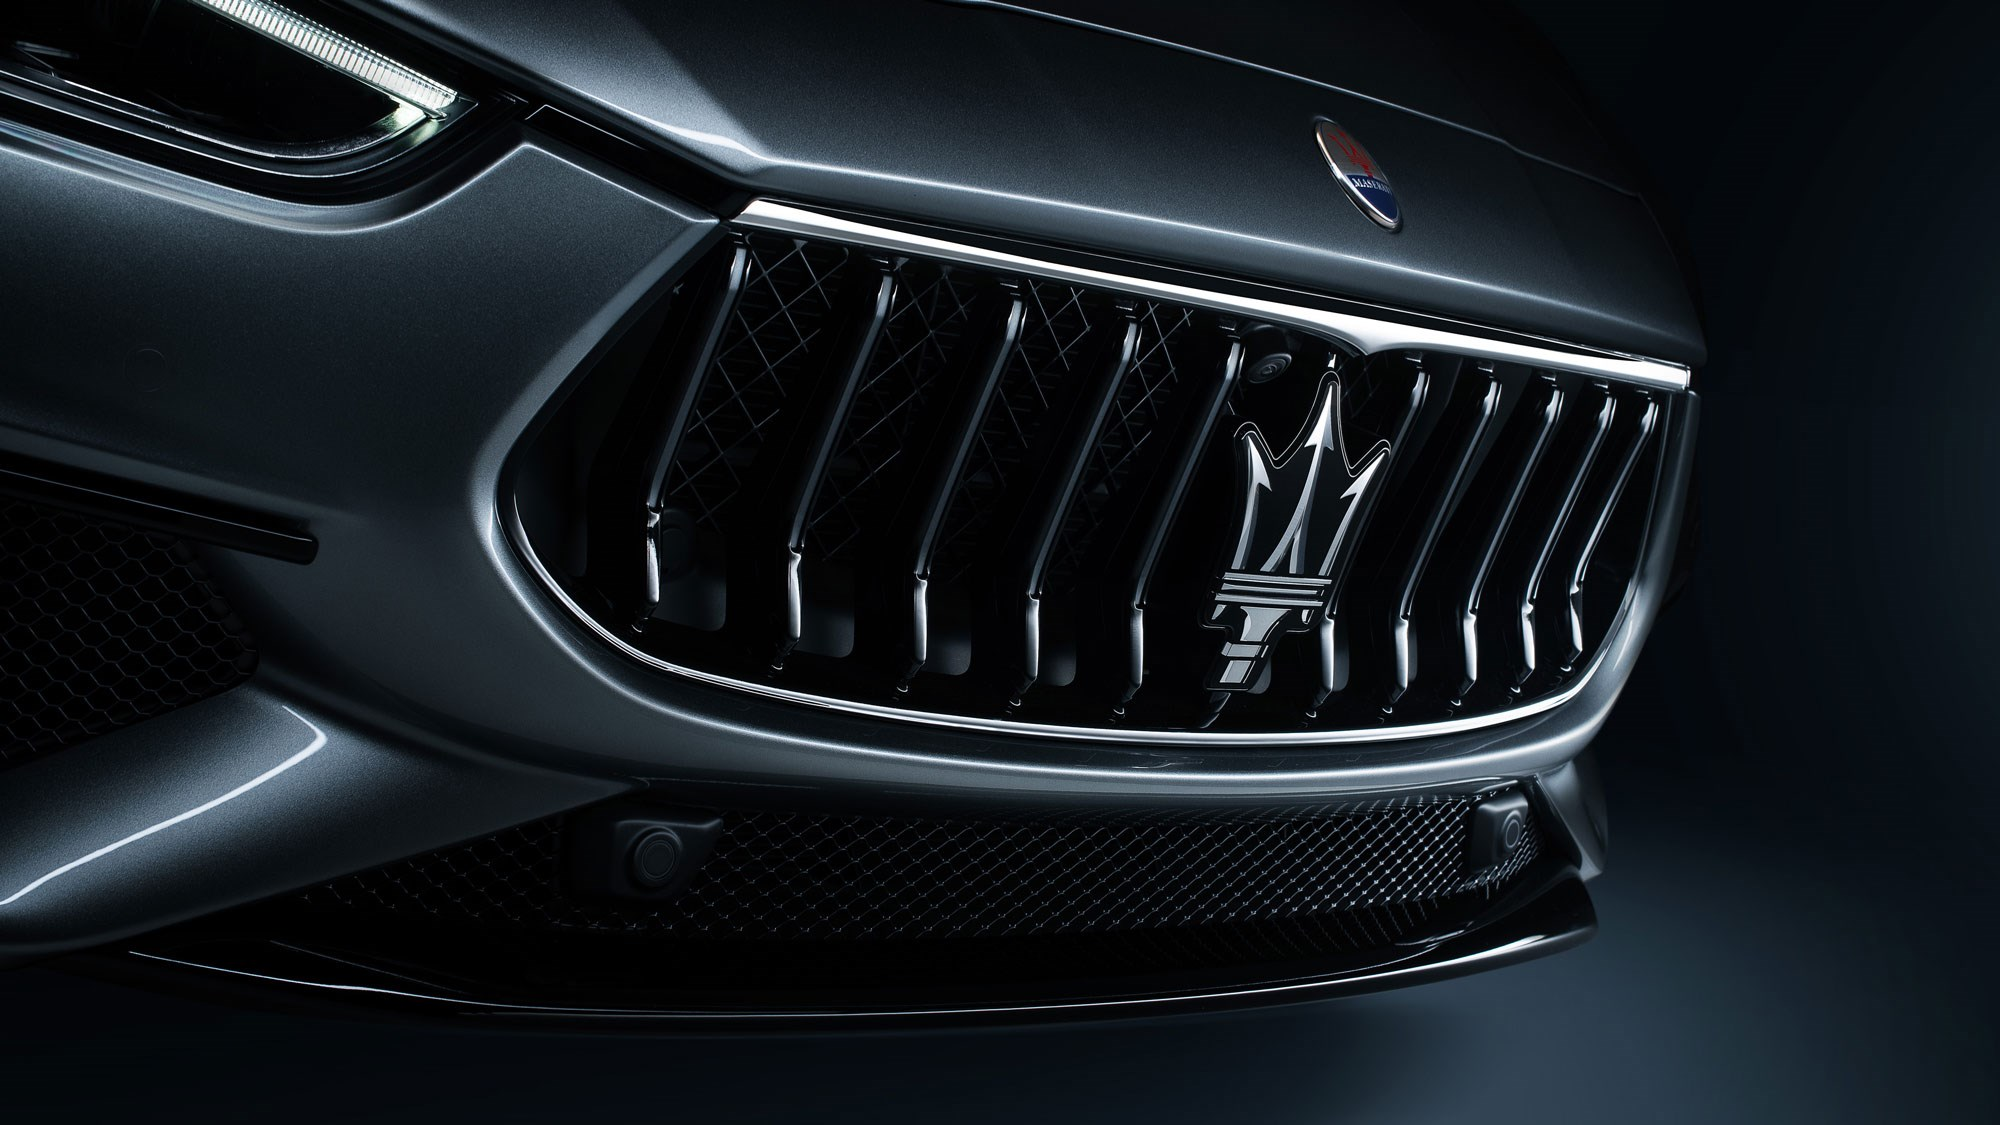 330-horsepower Ghibli Hybrid is Maserati's first electrified model